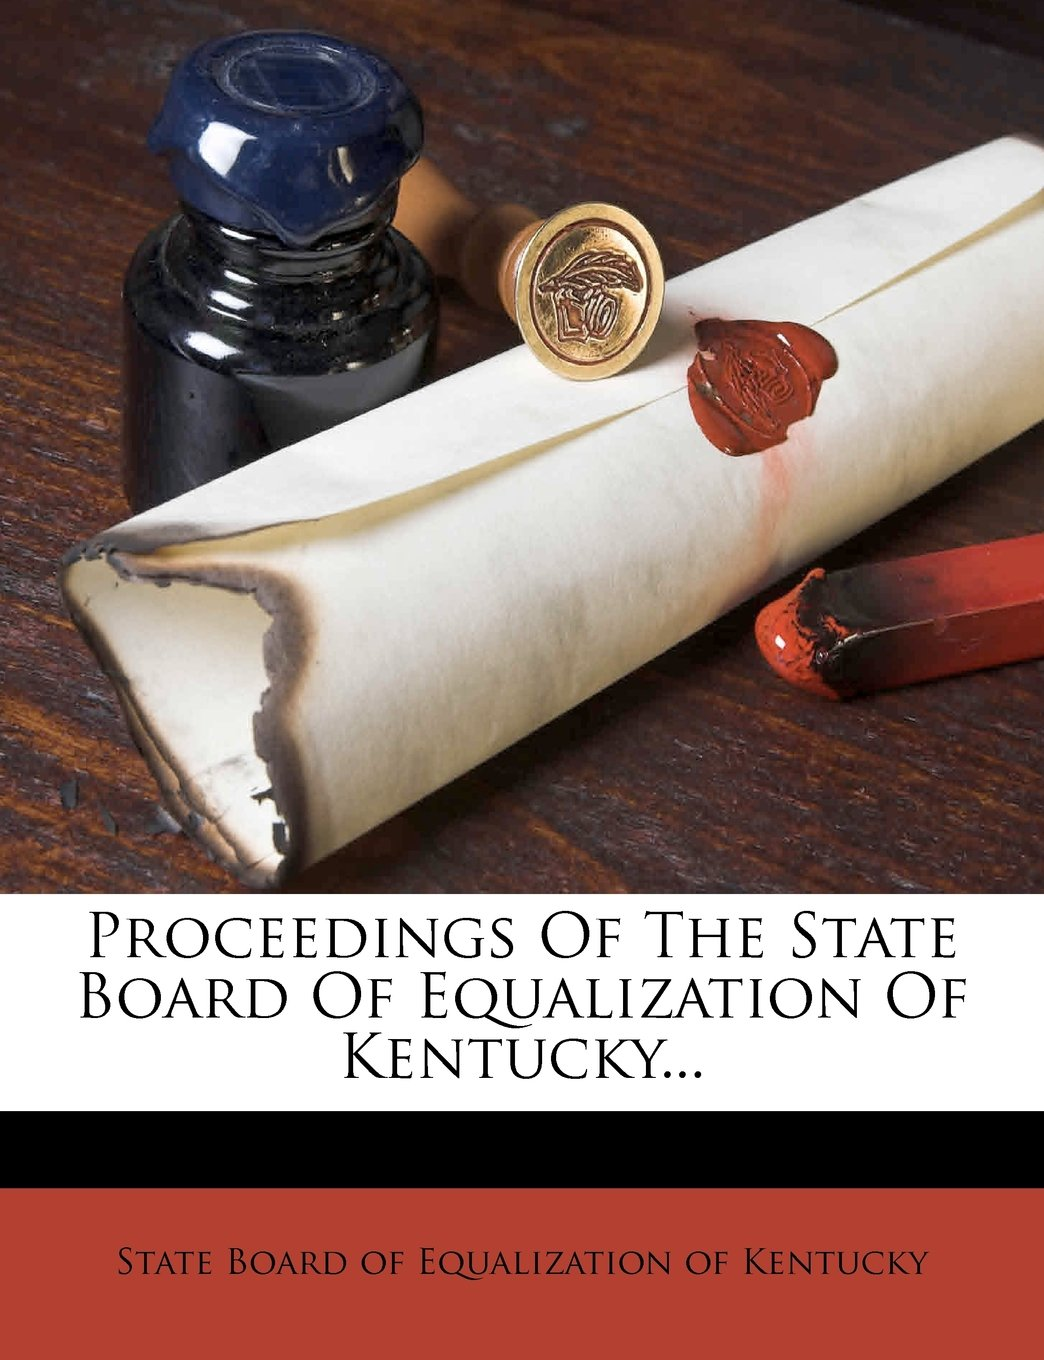 Download Proceedings Of The State Board Of Equalization Of Kentucky... (Russian Edition) PDF